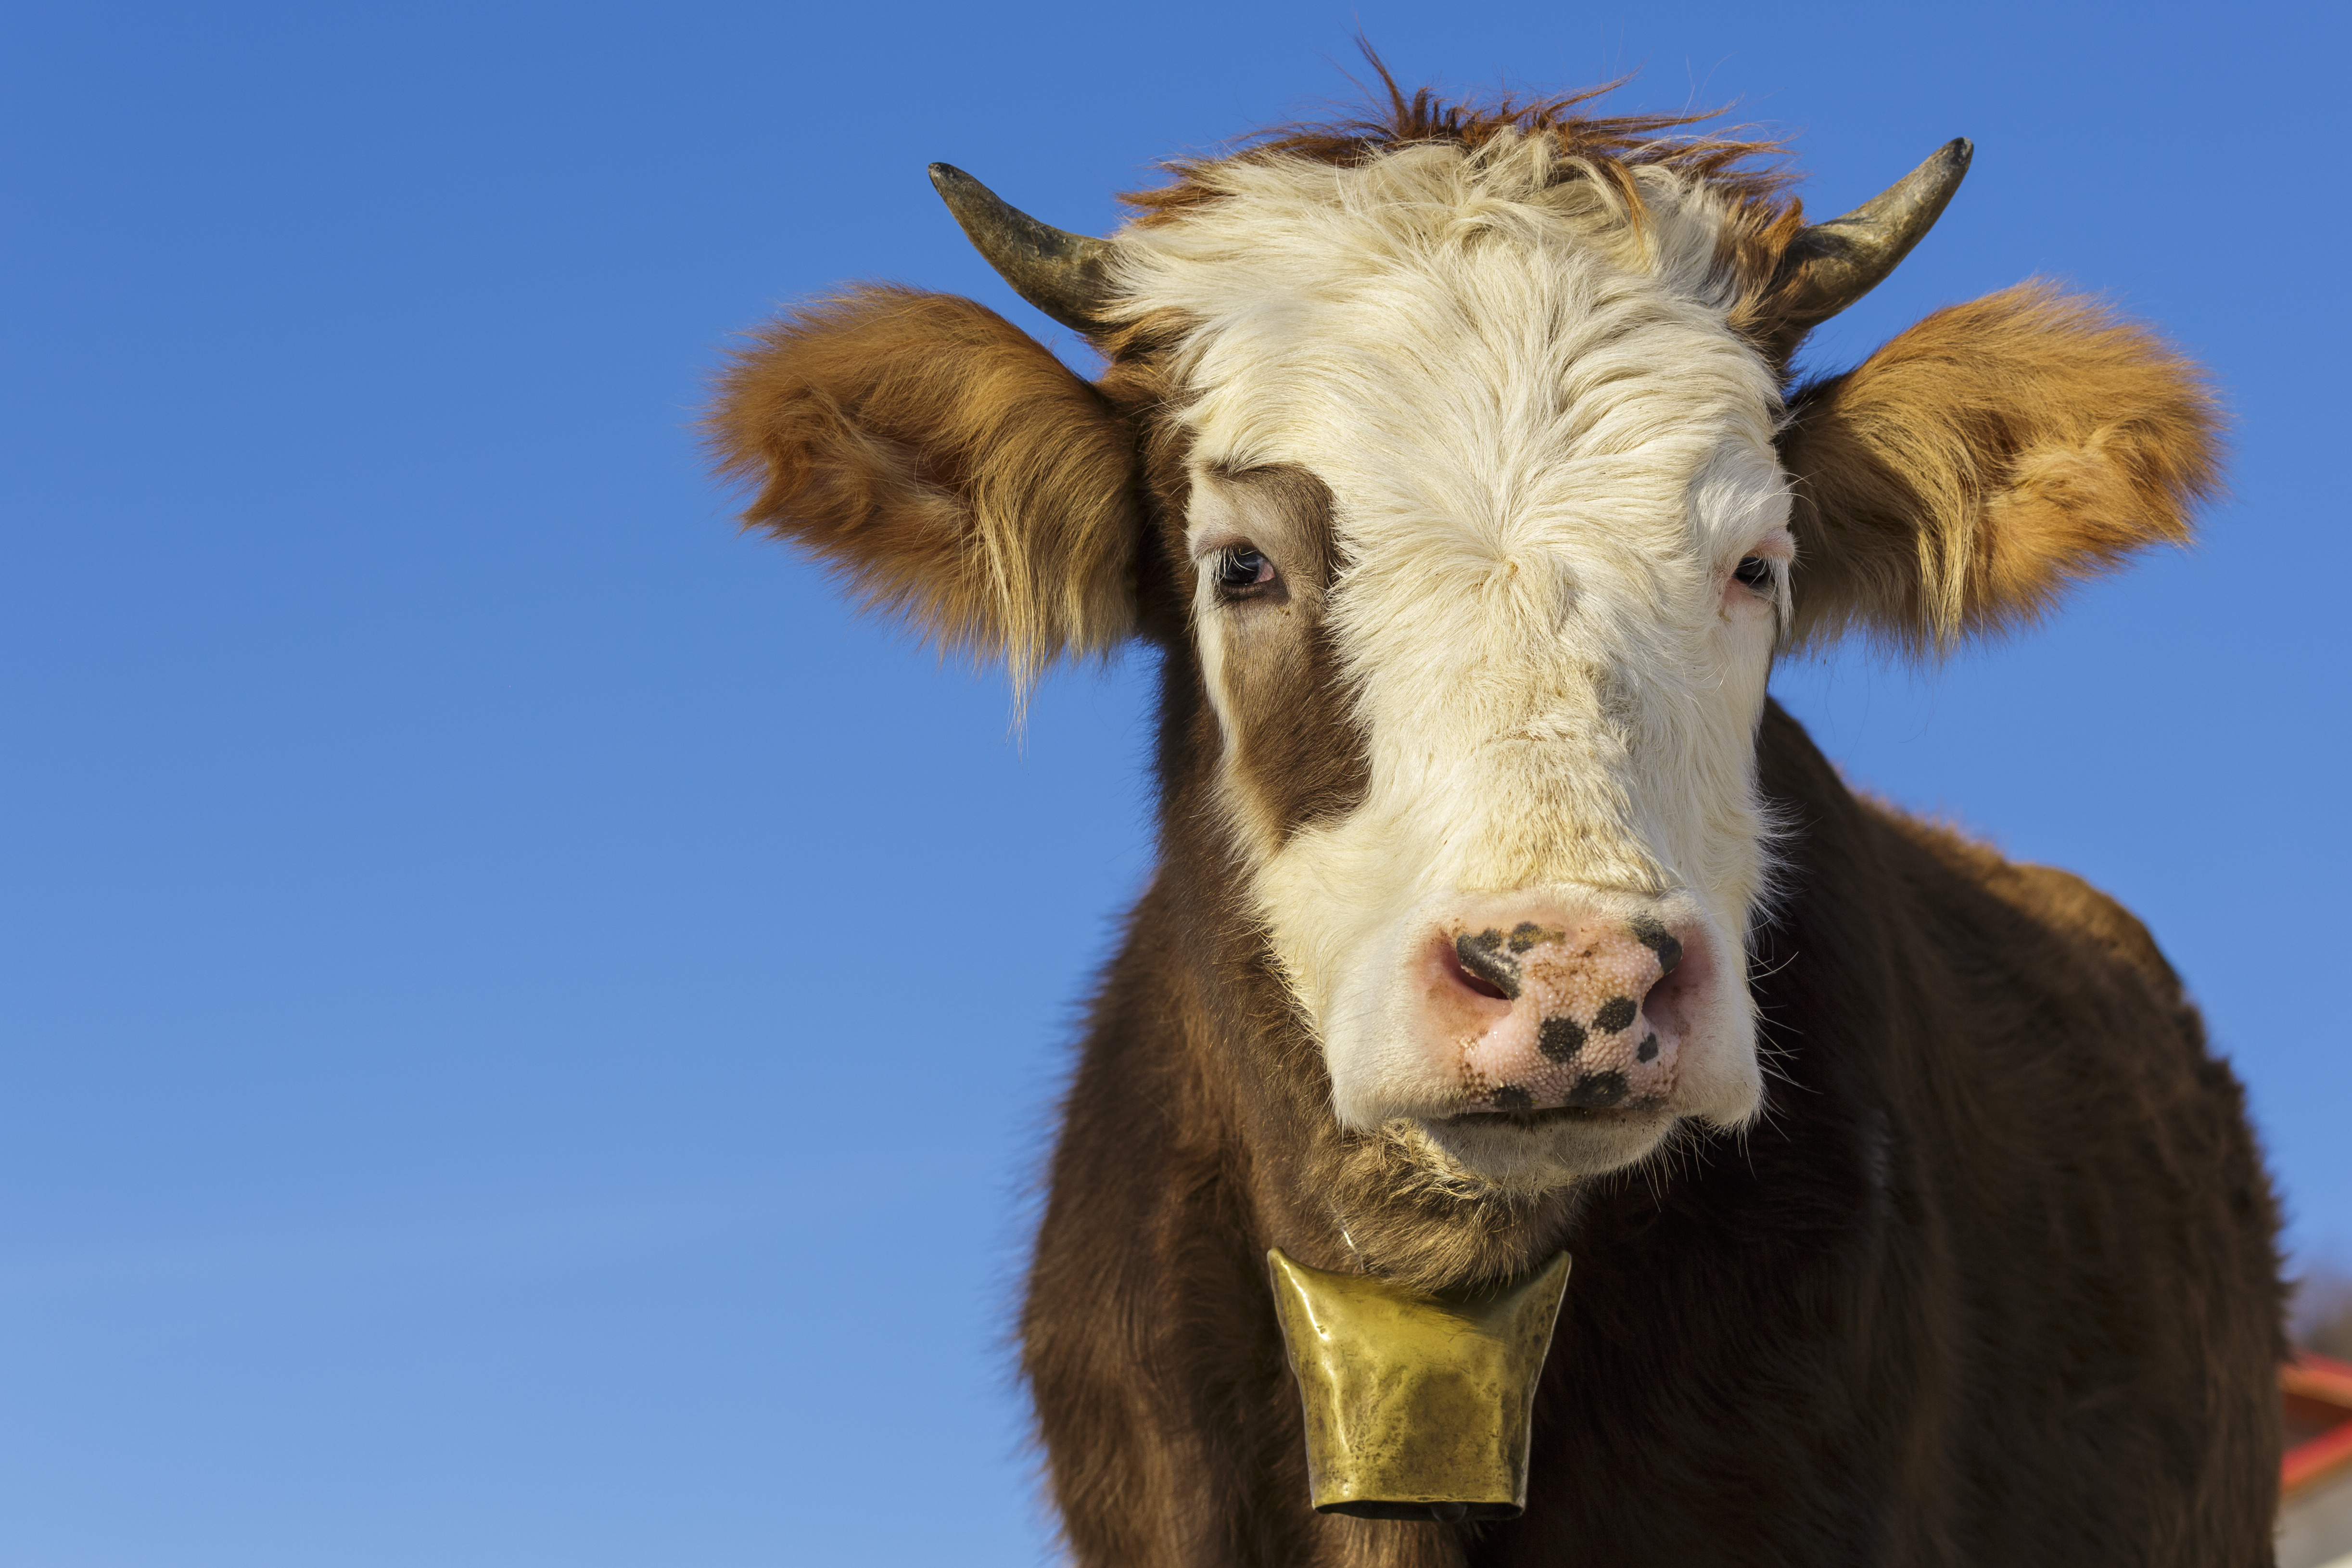 Shaggy brown-and-white cow with small horns looking at camera, wearing brass cowbell around its neck. Background of blue sky.